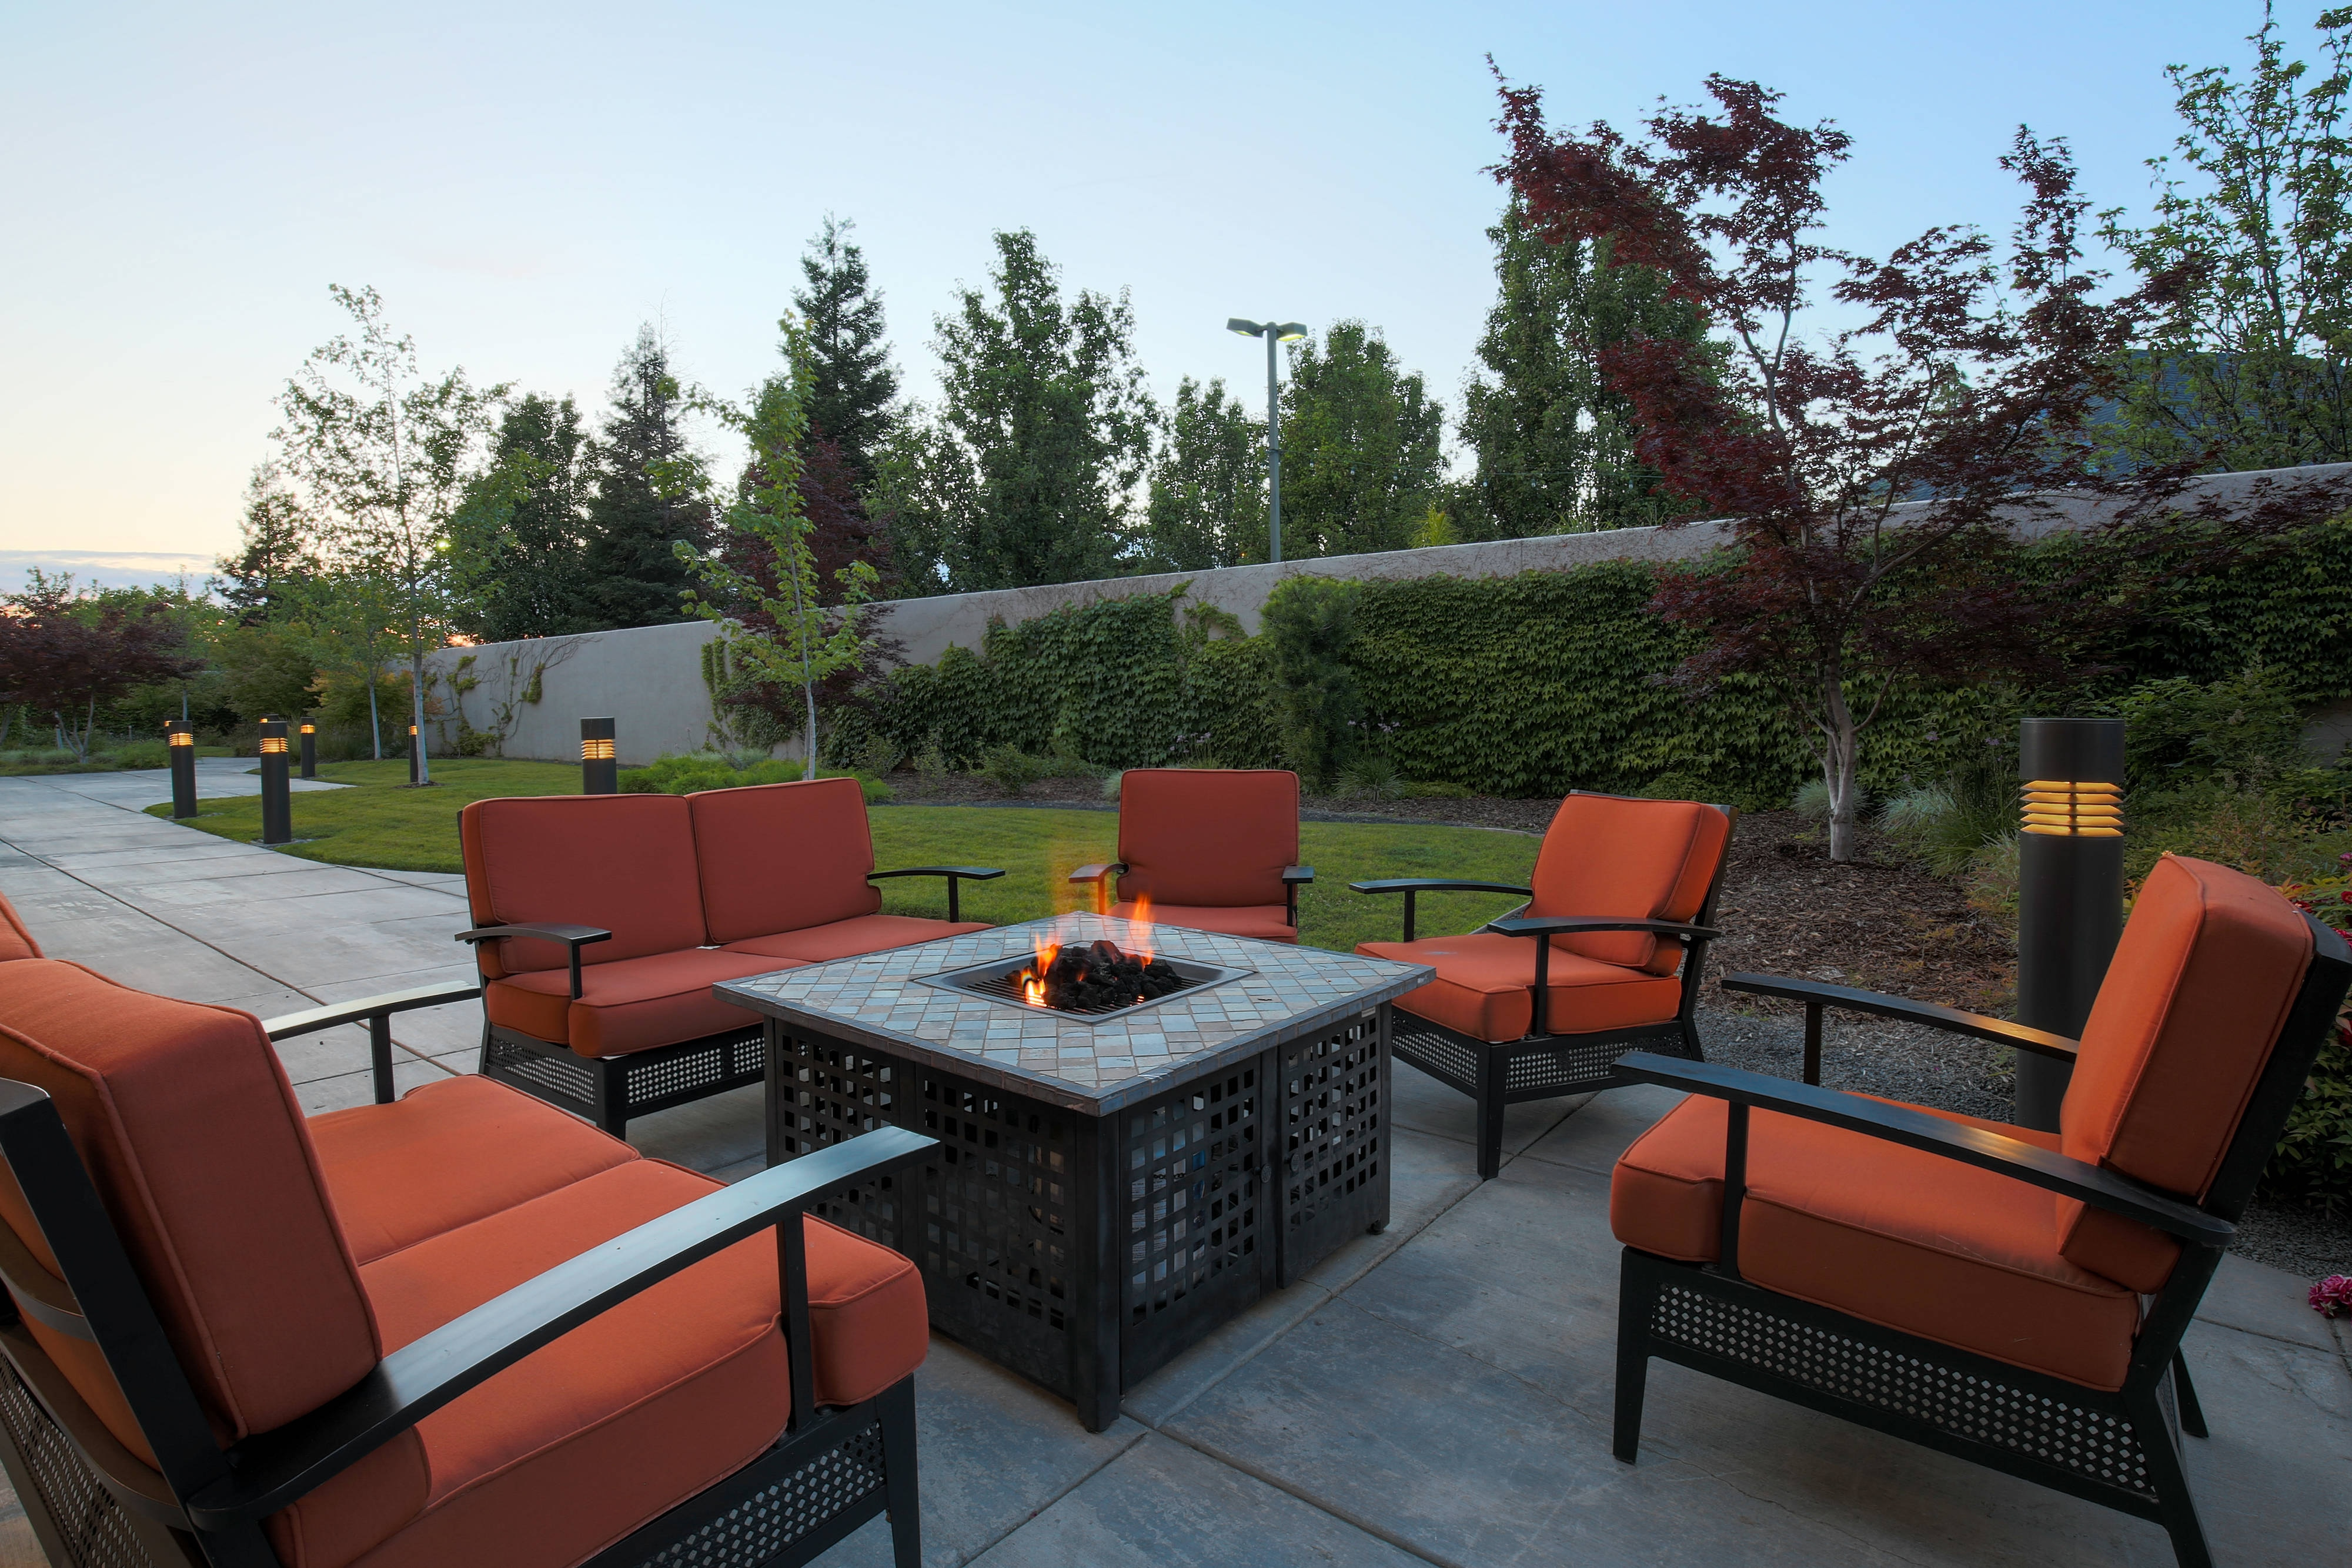 Chico California Hotel Outdoor Fire Pit